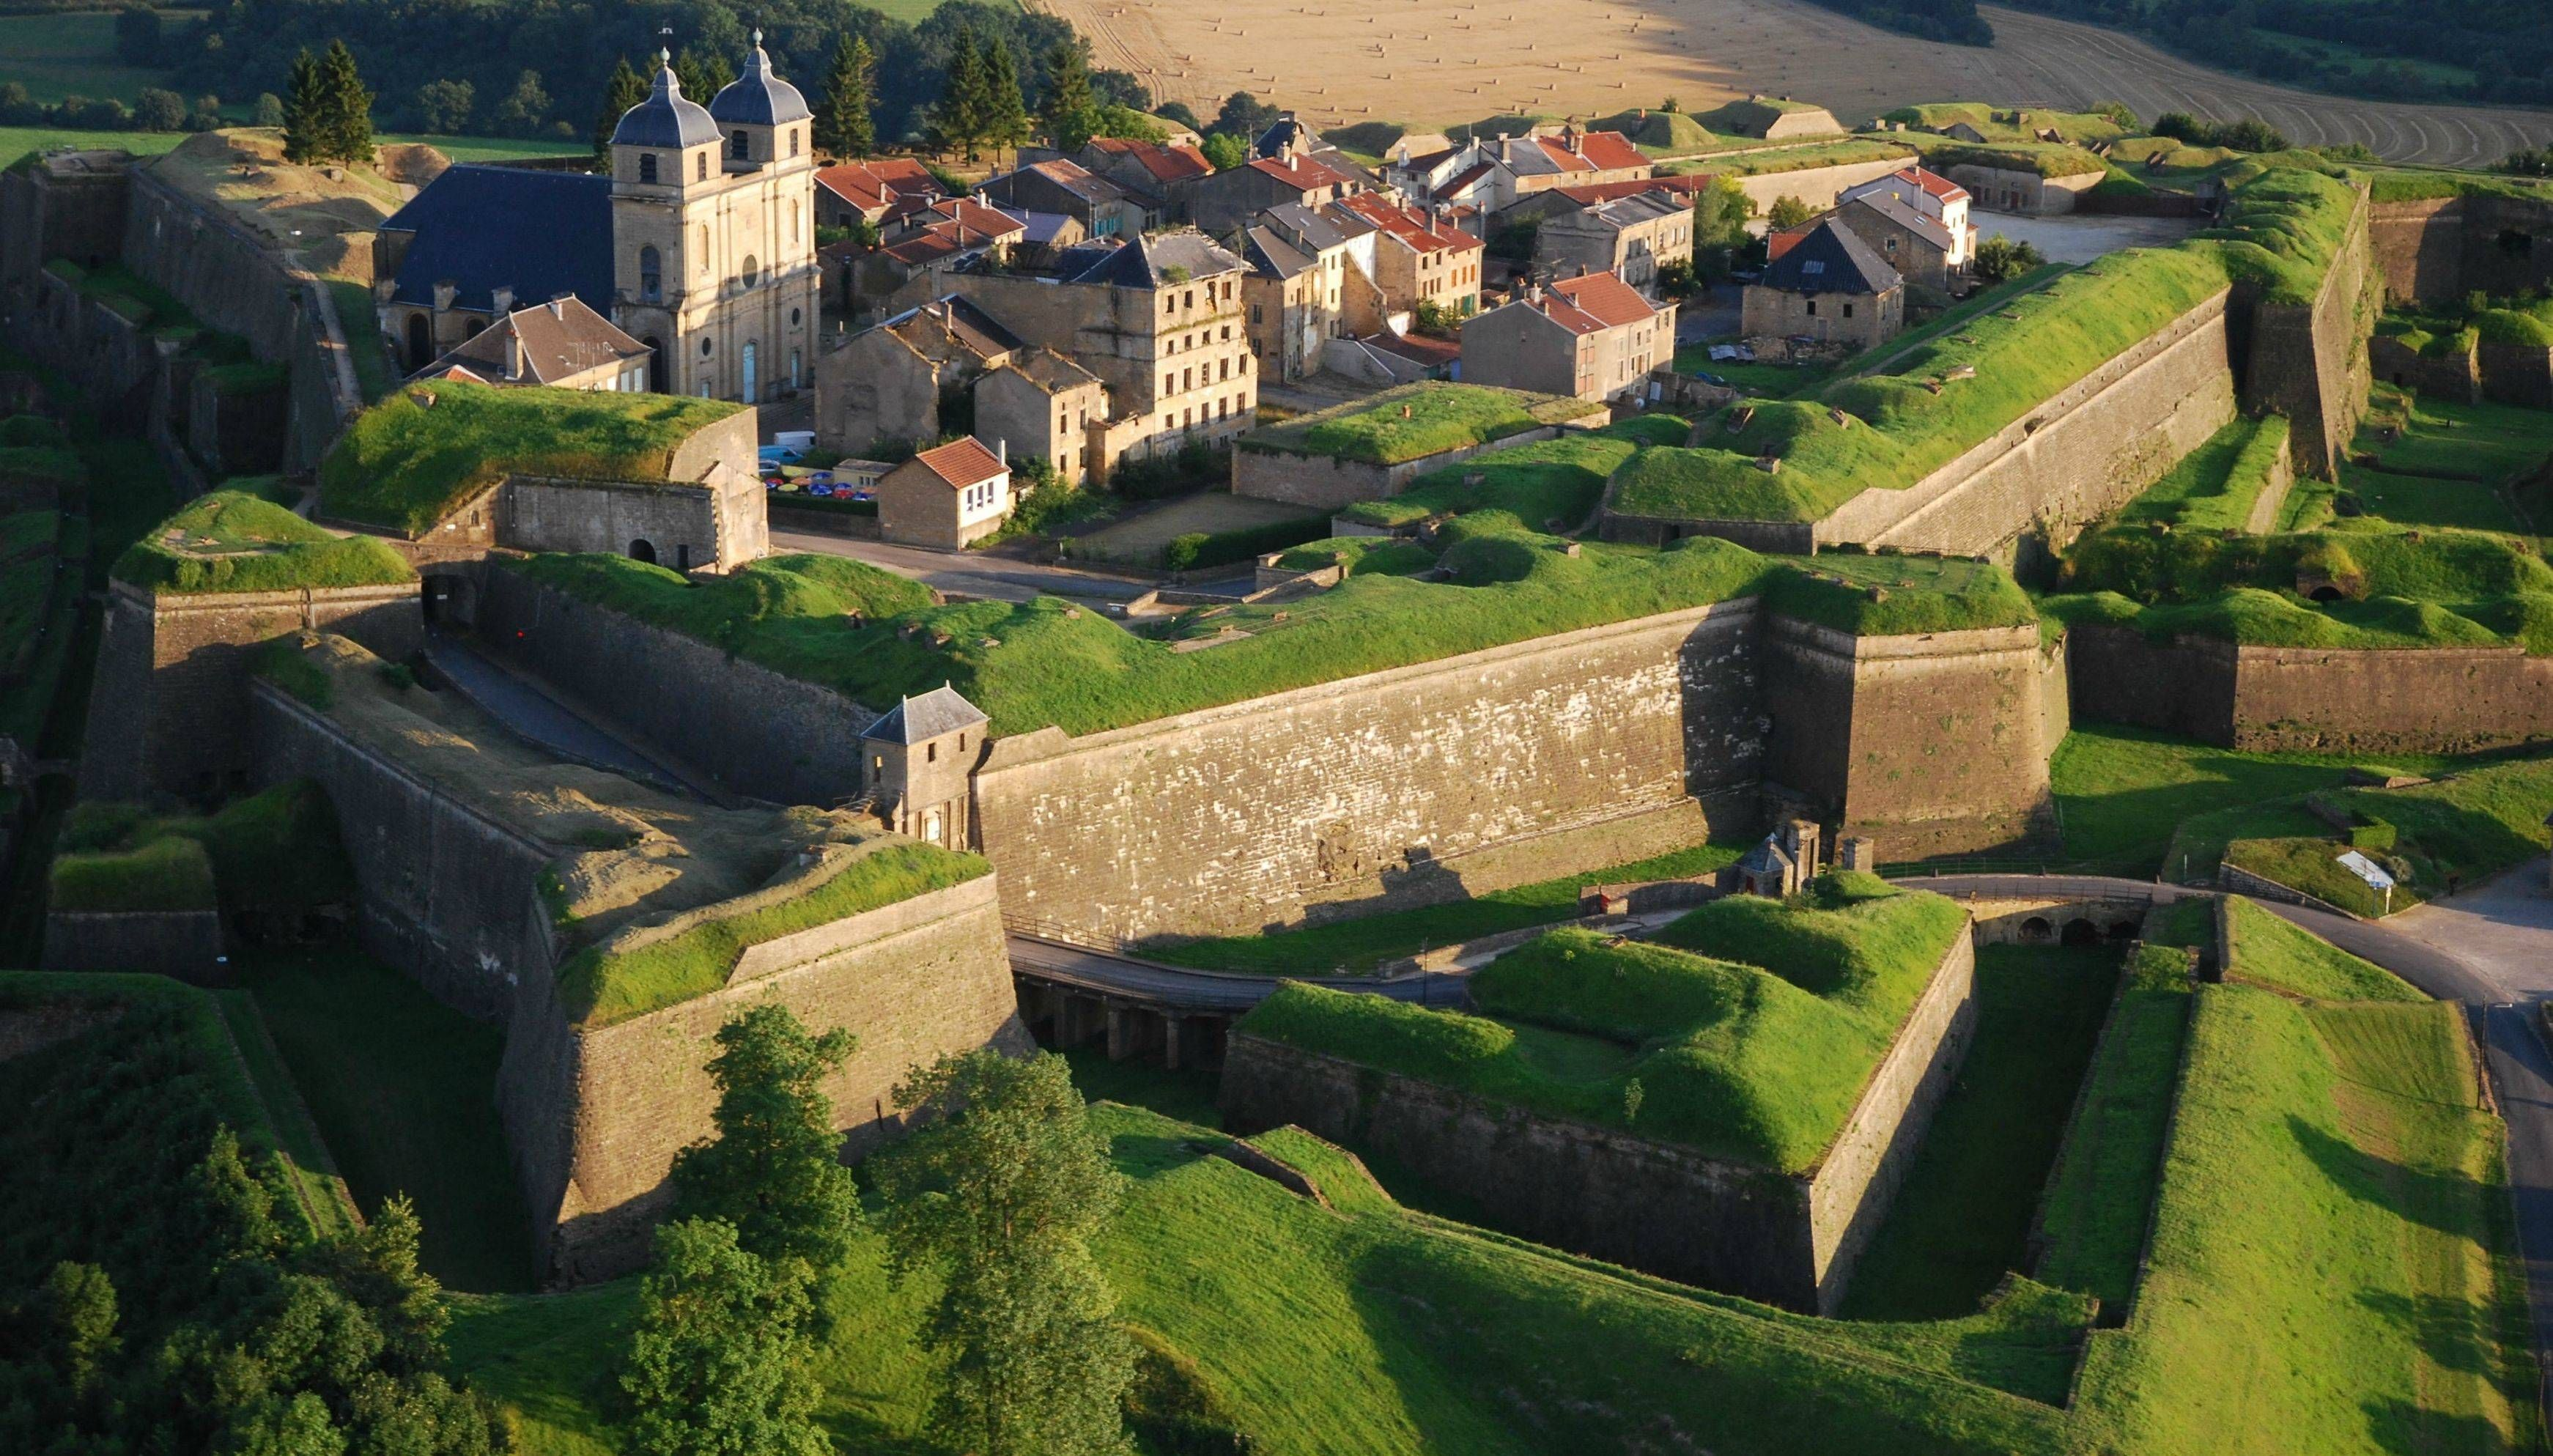 Montmédy, France. Covering the top of a hill, this historically important fortress was originally a powerful Medieval castle. The fortress saw much action and was greatly improved by the genius Vauban. Today, people still live in a village inside the fortress walls.